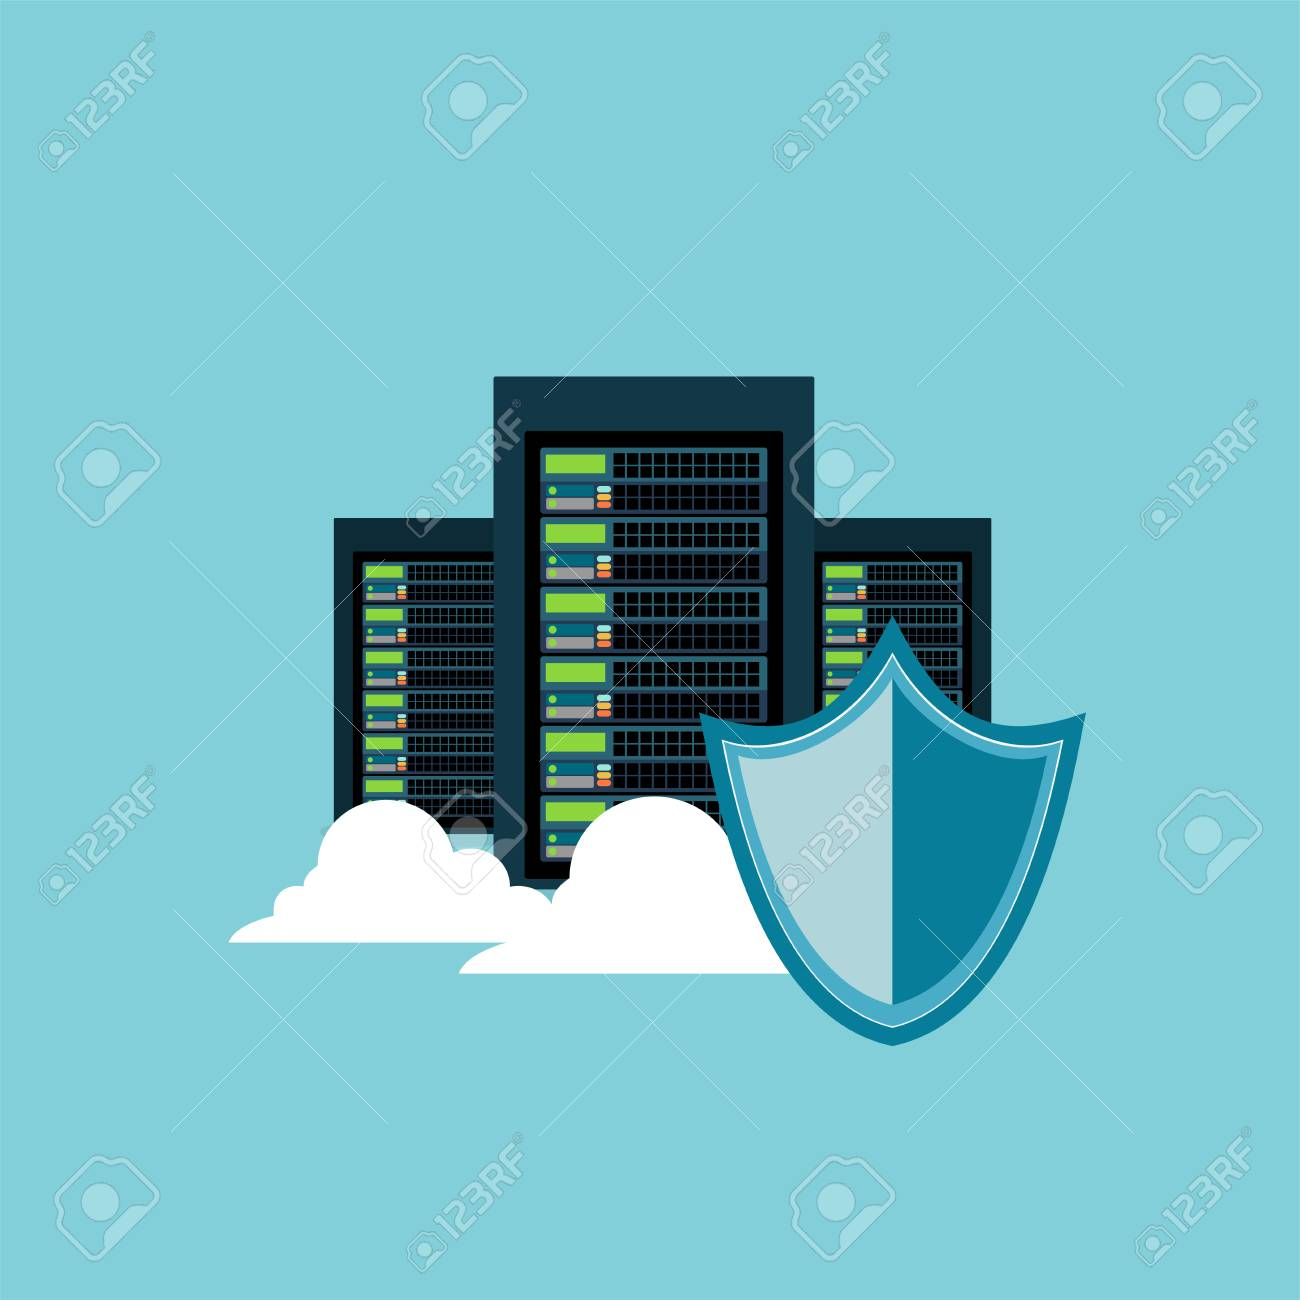 Database Server Security Shield Data Center Protection Internet And Information Privacy Stock Vector